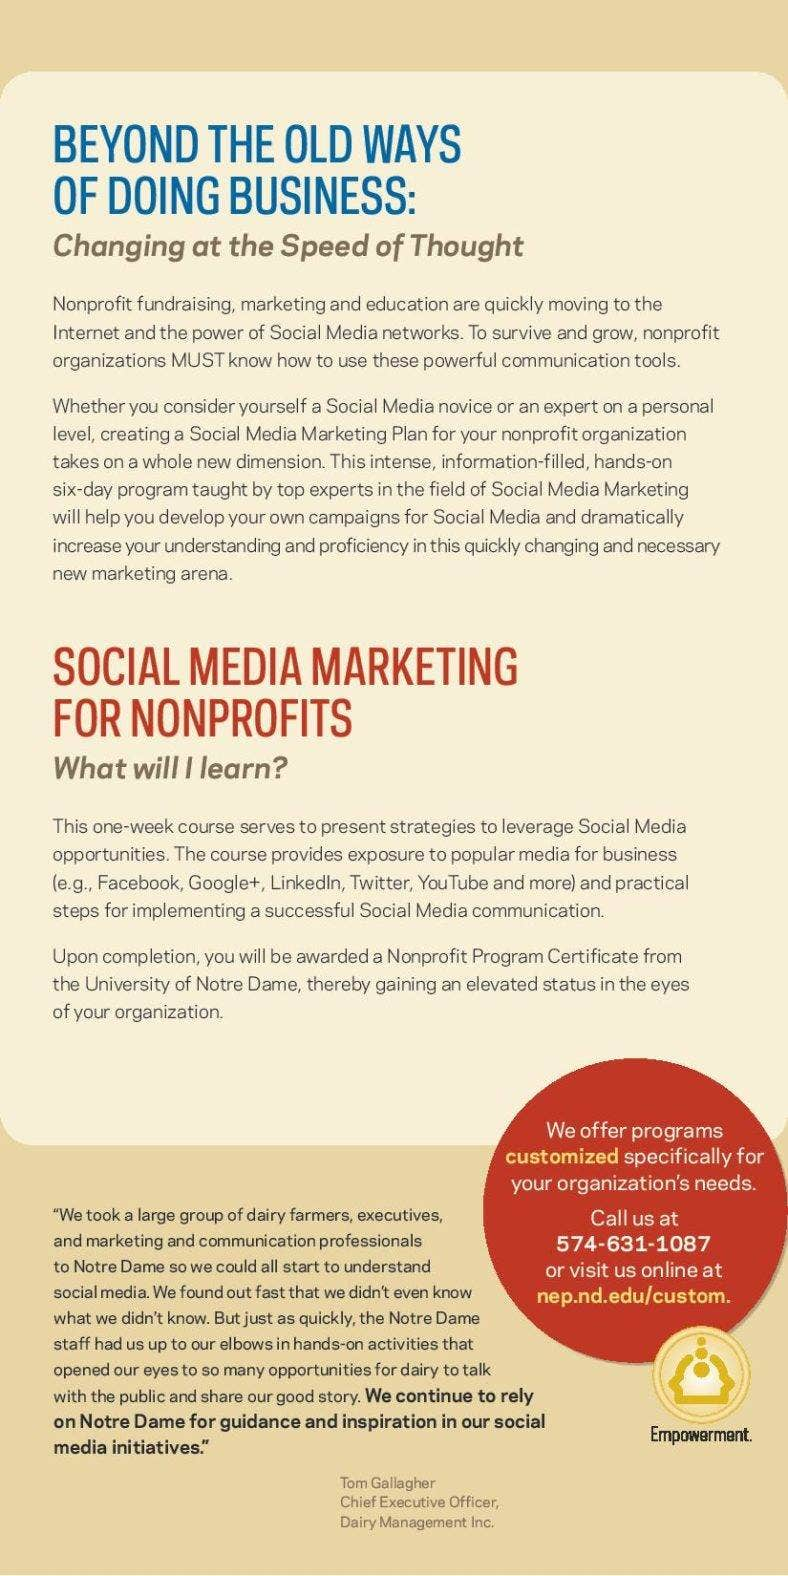 social-media-marketing-plan-for-non-profits-pdf-format-free-download-page-002